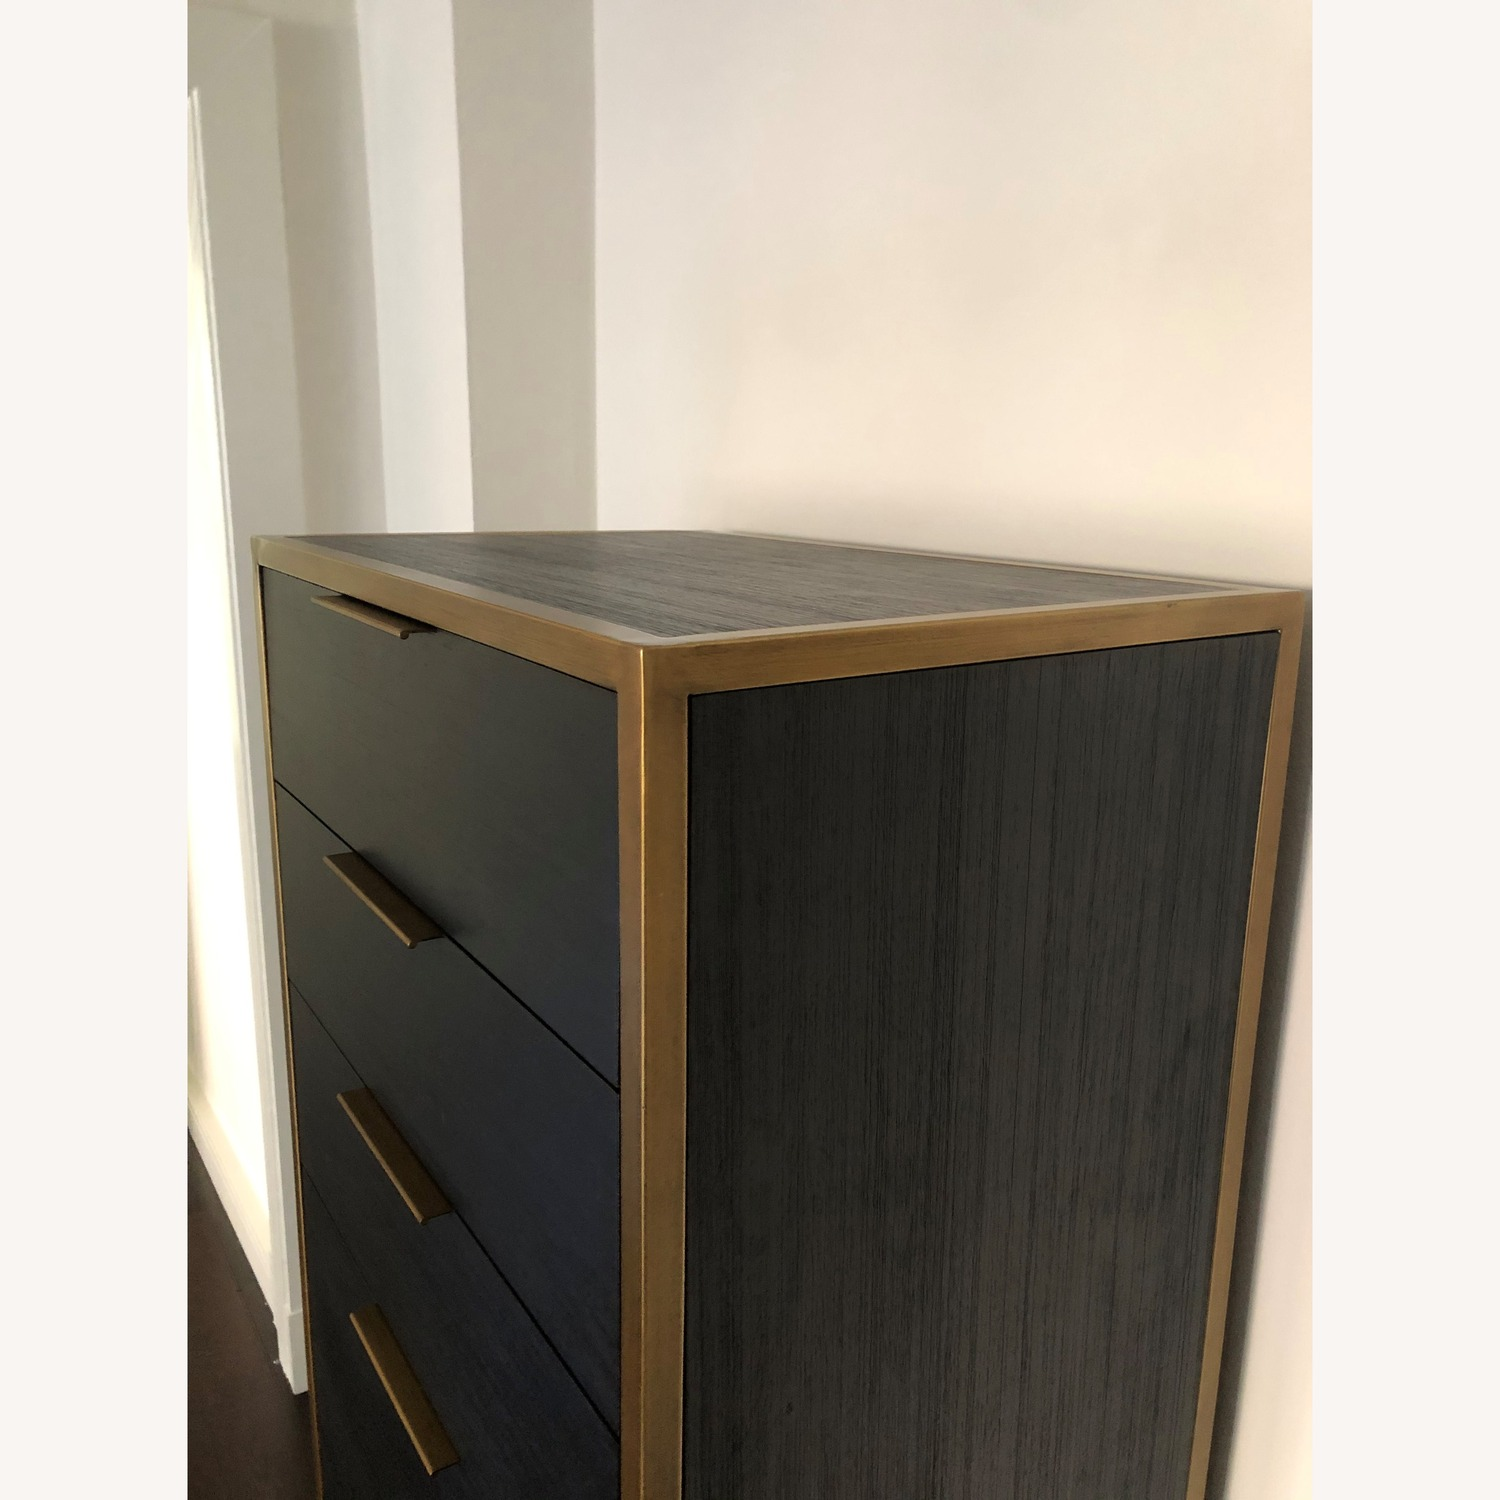 Crate & Barrel Oxford Black 6-Drawer Tall Chest - image-4